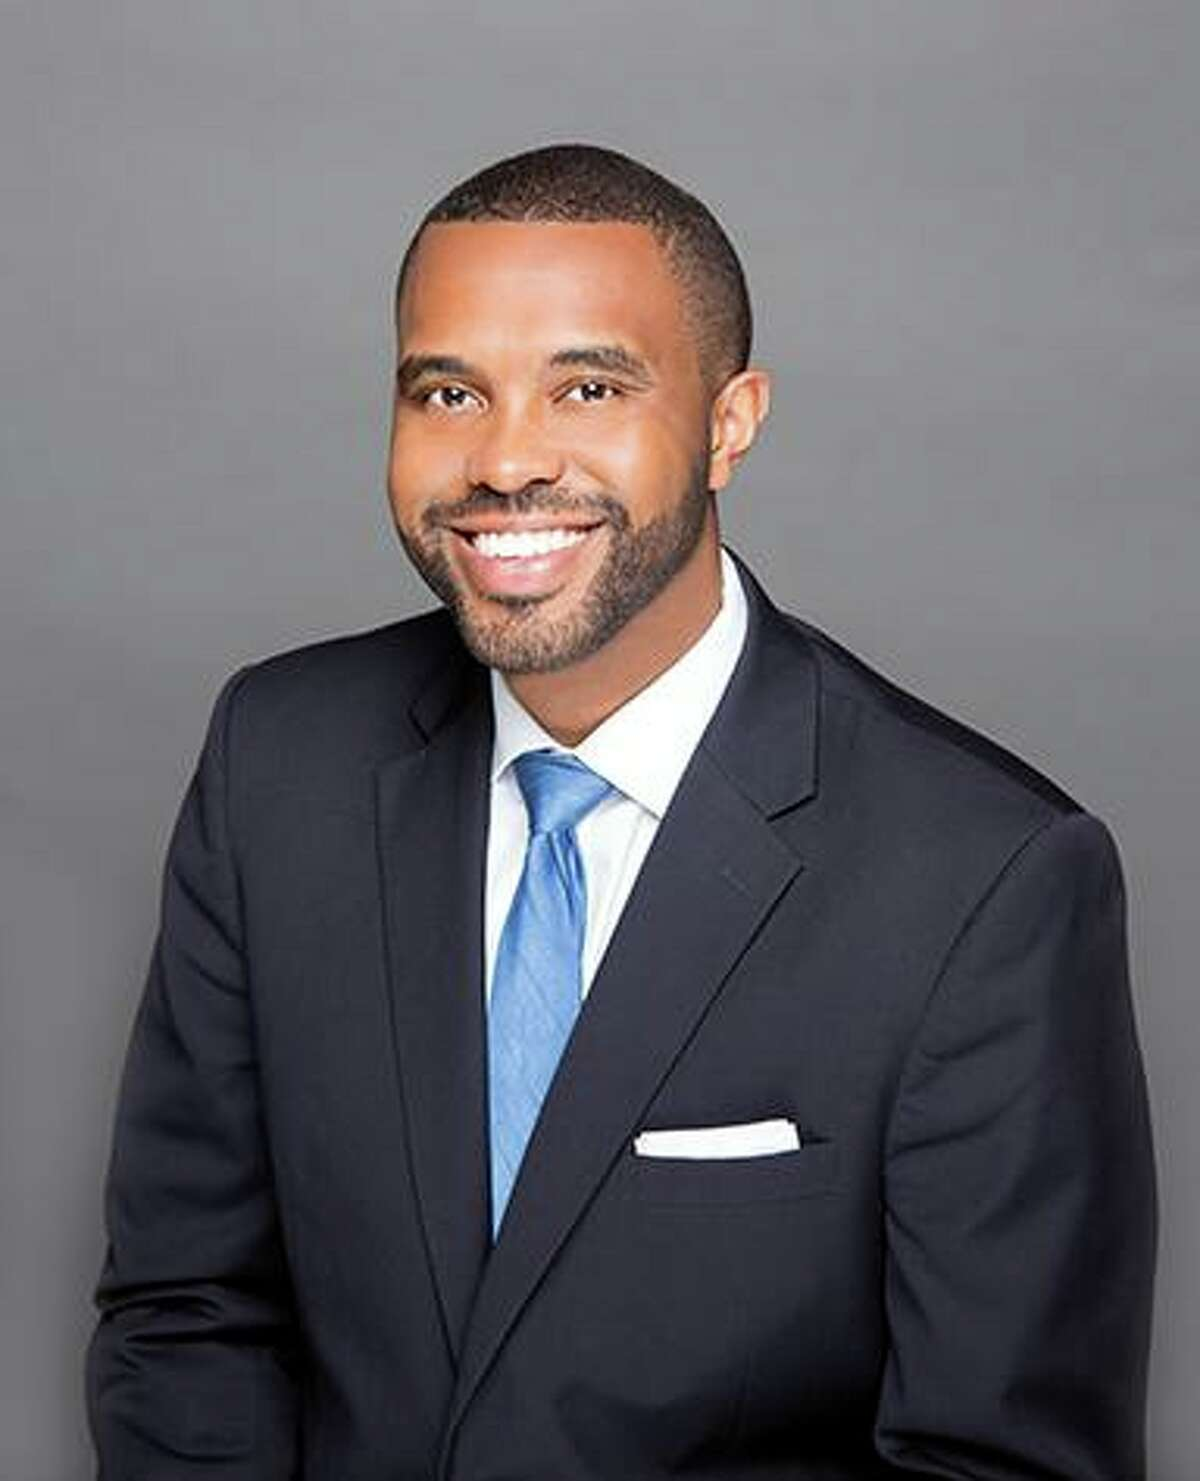 Judge Jeremy L. Brown is a Harris County justice of the peace.